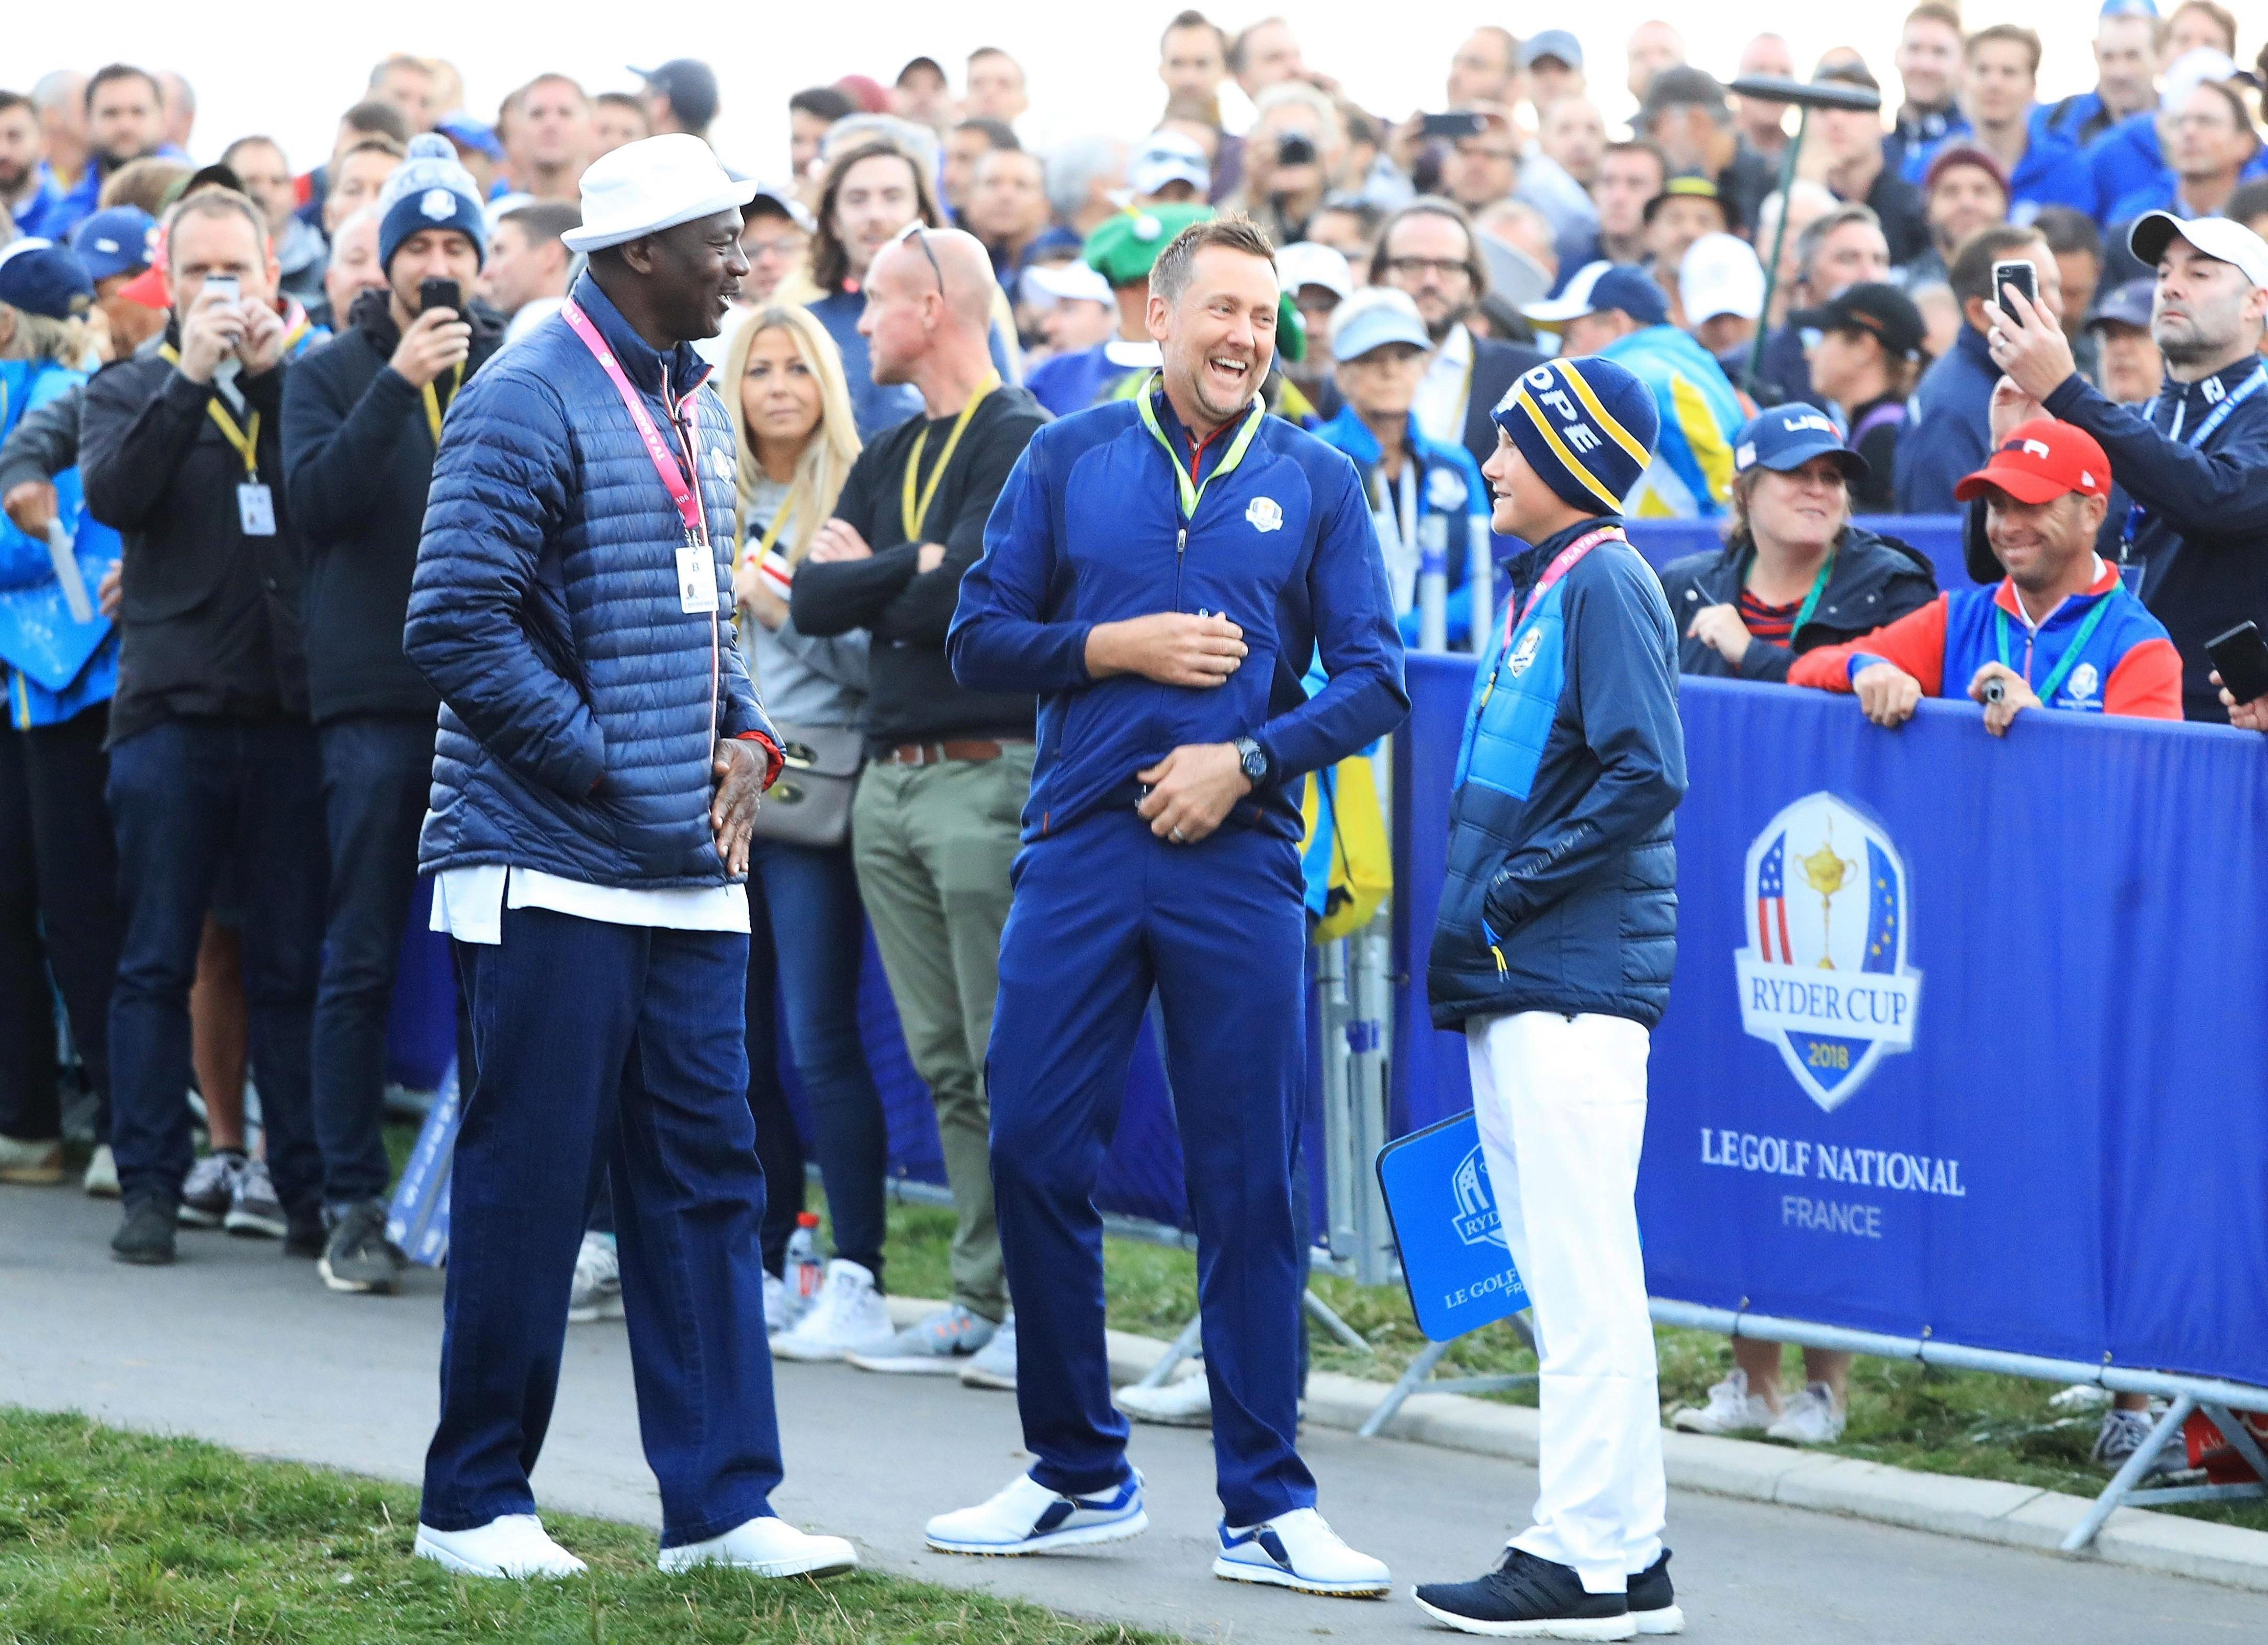 Michael Jordan greets Ian Poulter on the first tee at the Ryder Cup